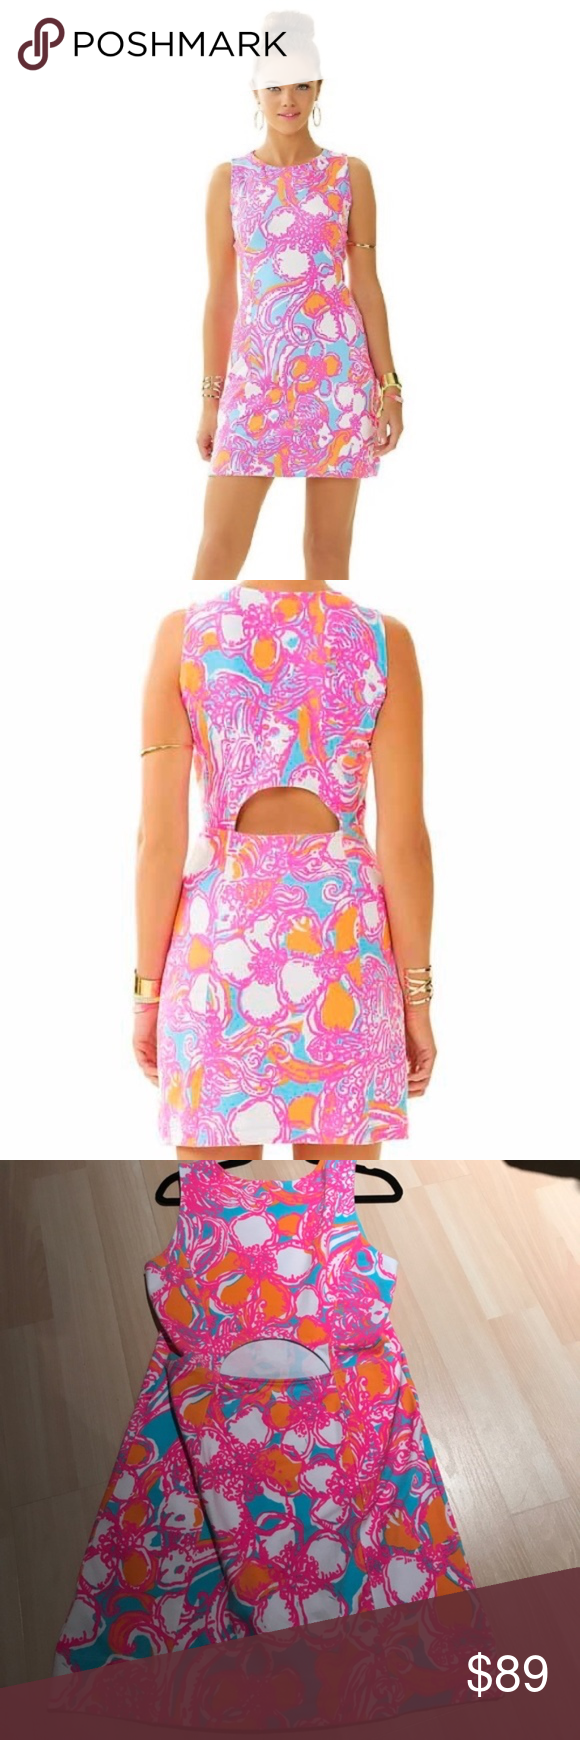 d3bbabb84a1d08 Lilly Pulitzer Whiting Cutout Shift Dress L EUC. Worn once. Lilly Pulitzer  Whiting cutout